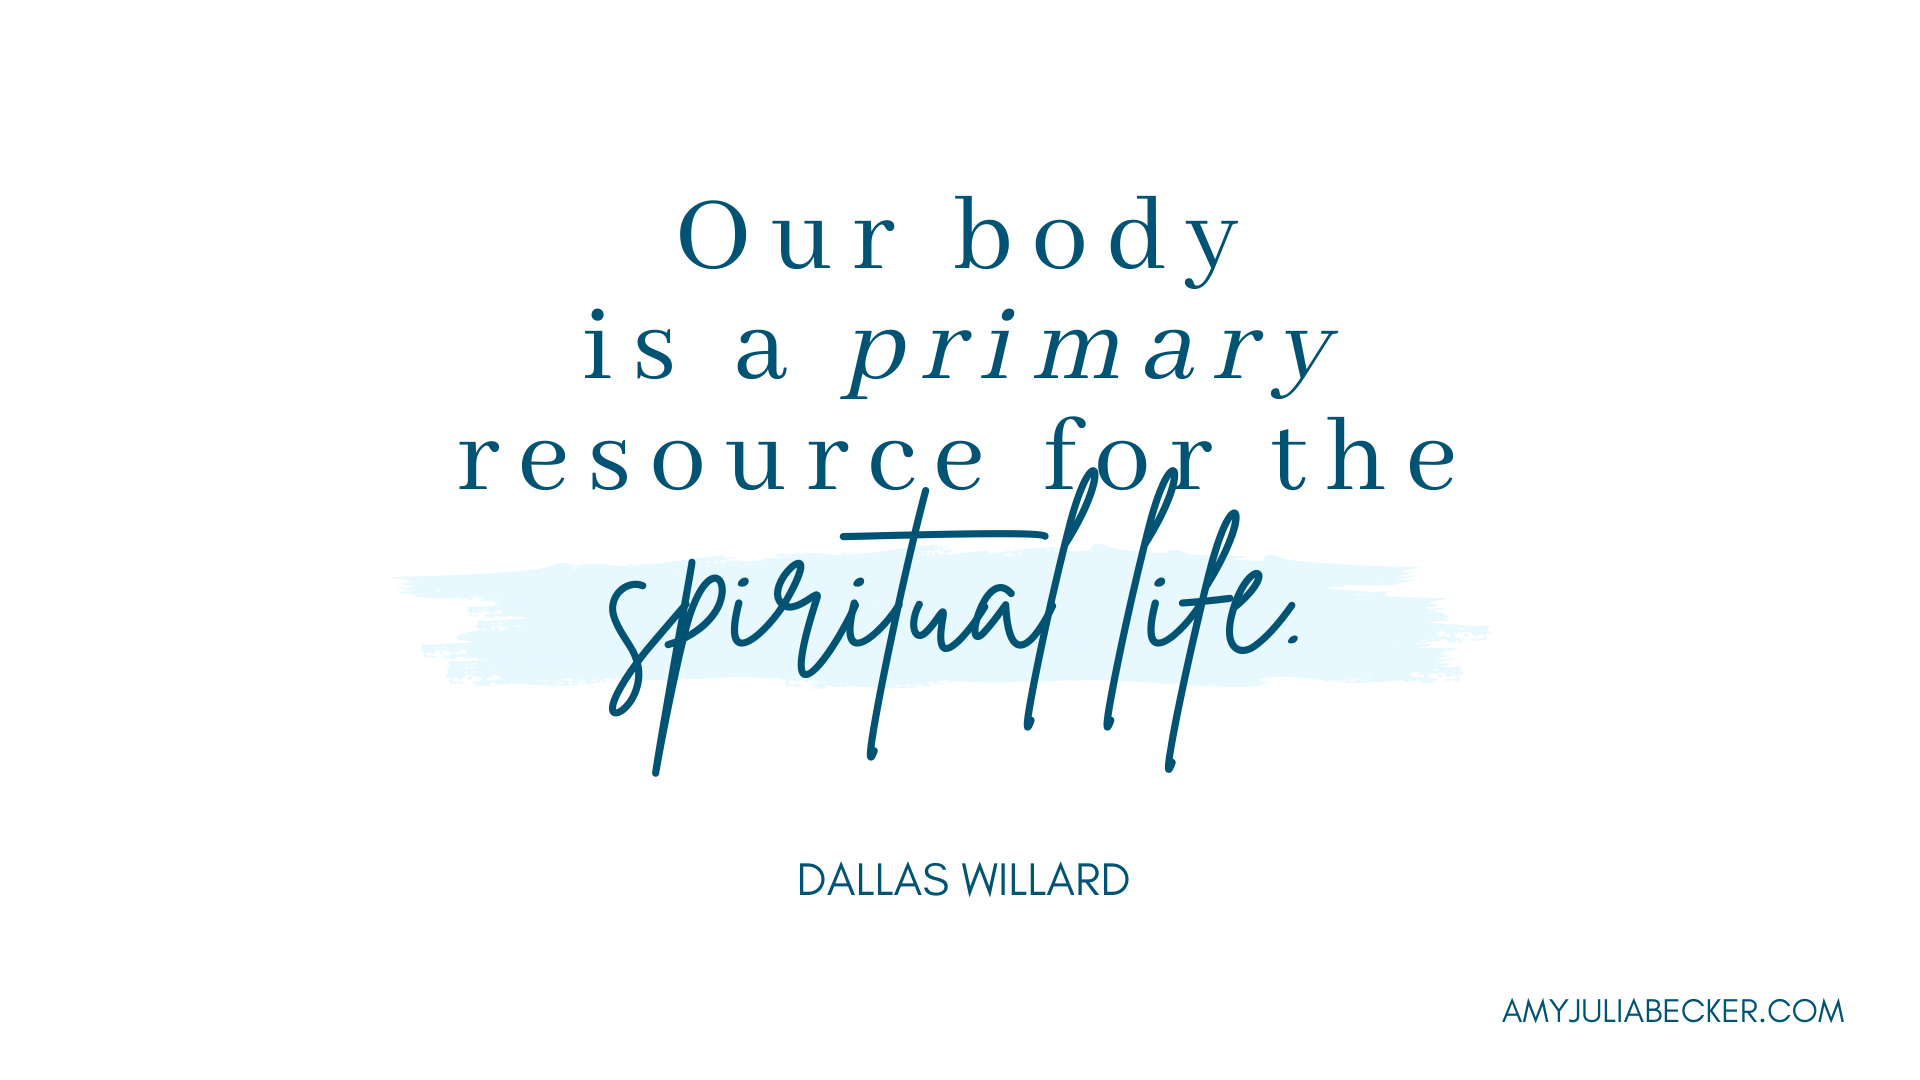 """white graphic with blue text that says """"Our body is a primary resource for the spiritual life."""" Dallas Willard"""